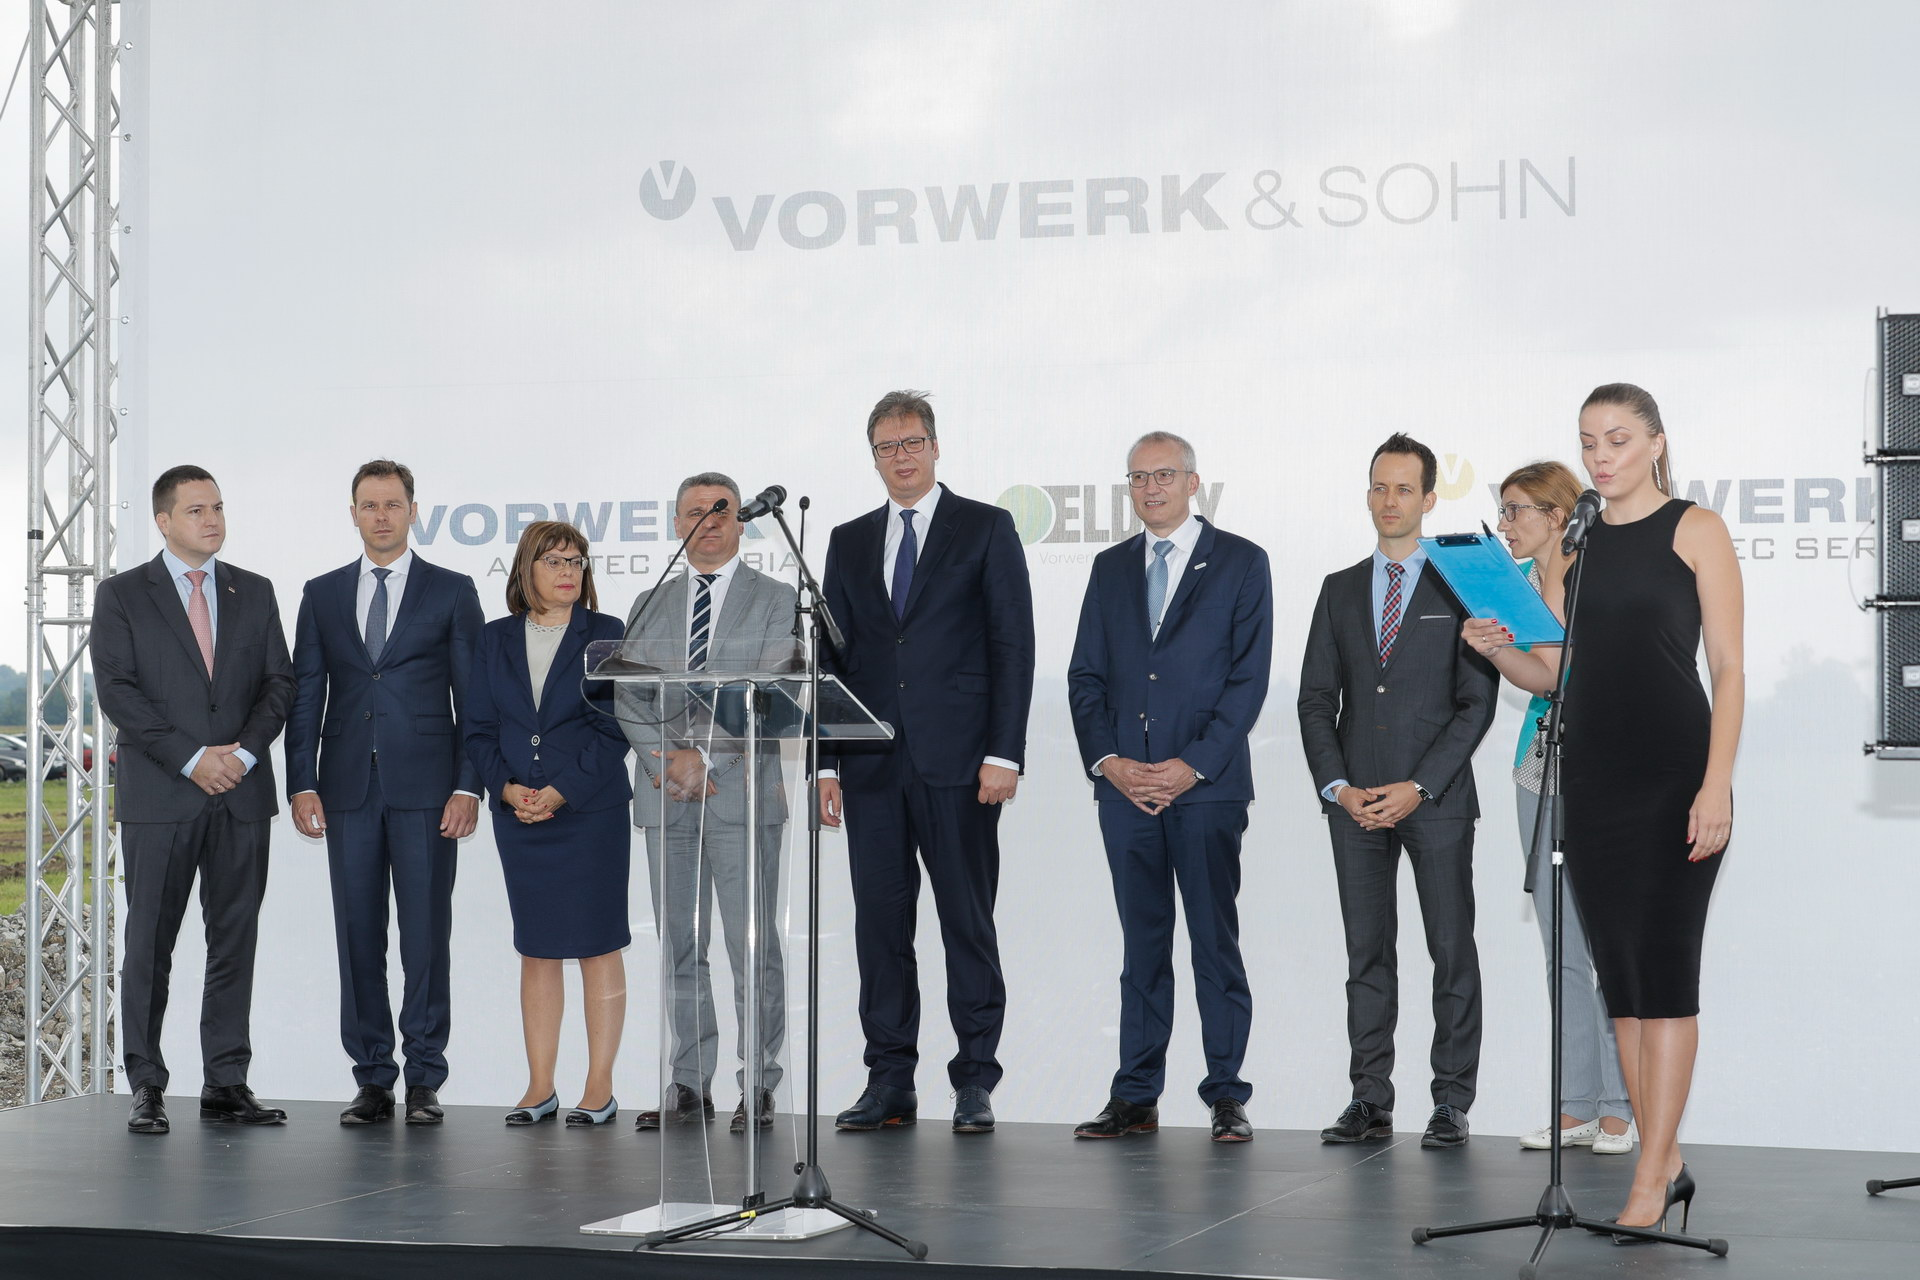 Vorwerk Groundbreaking Ceremony